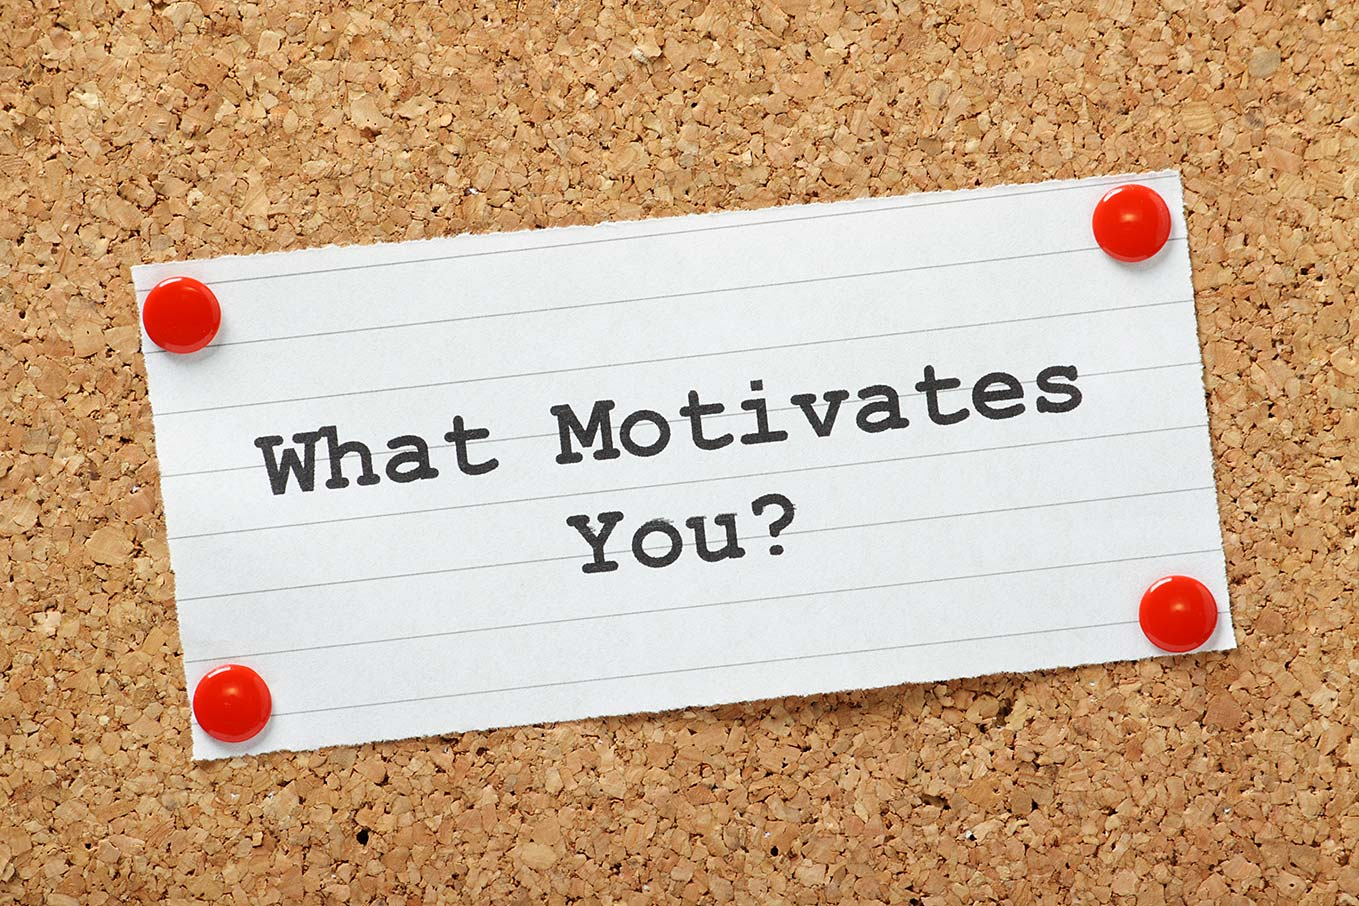 Staying Motivated - What's Getting in Your Way?